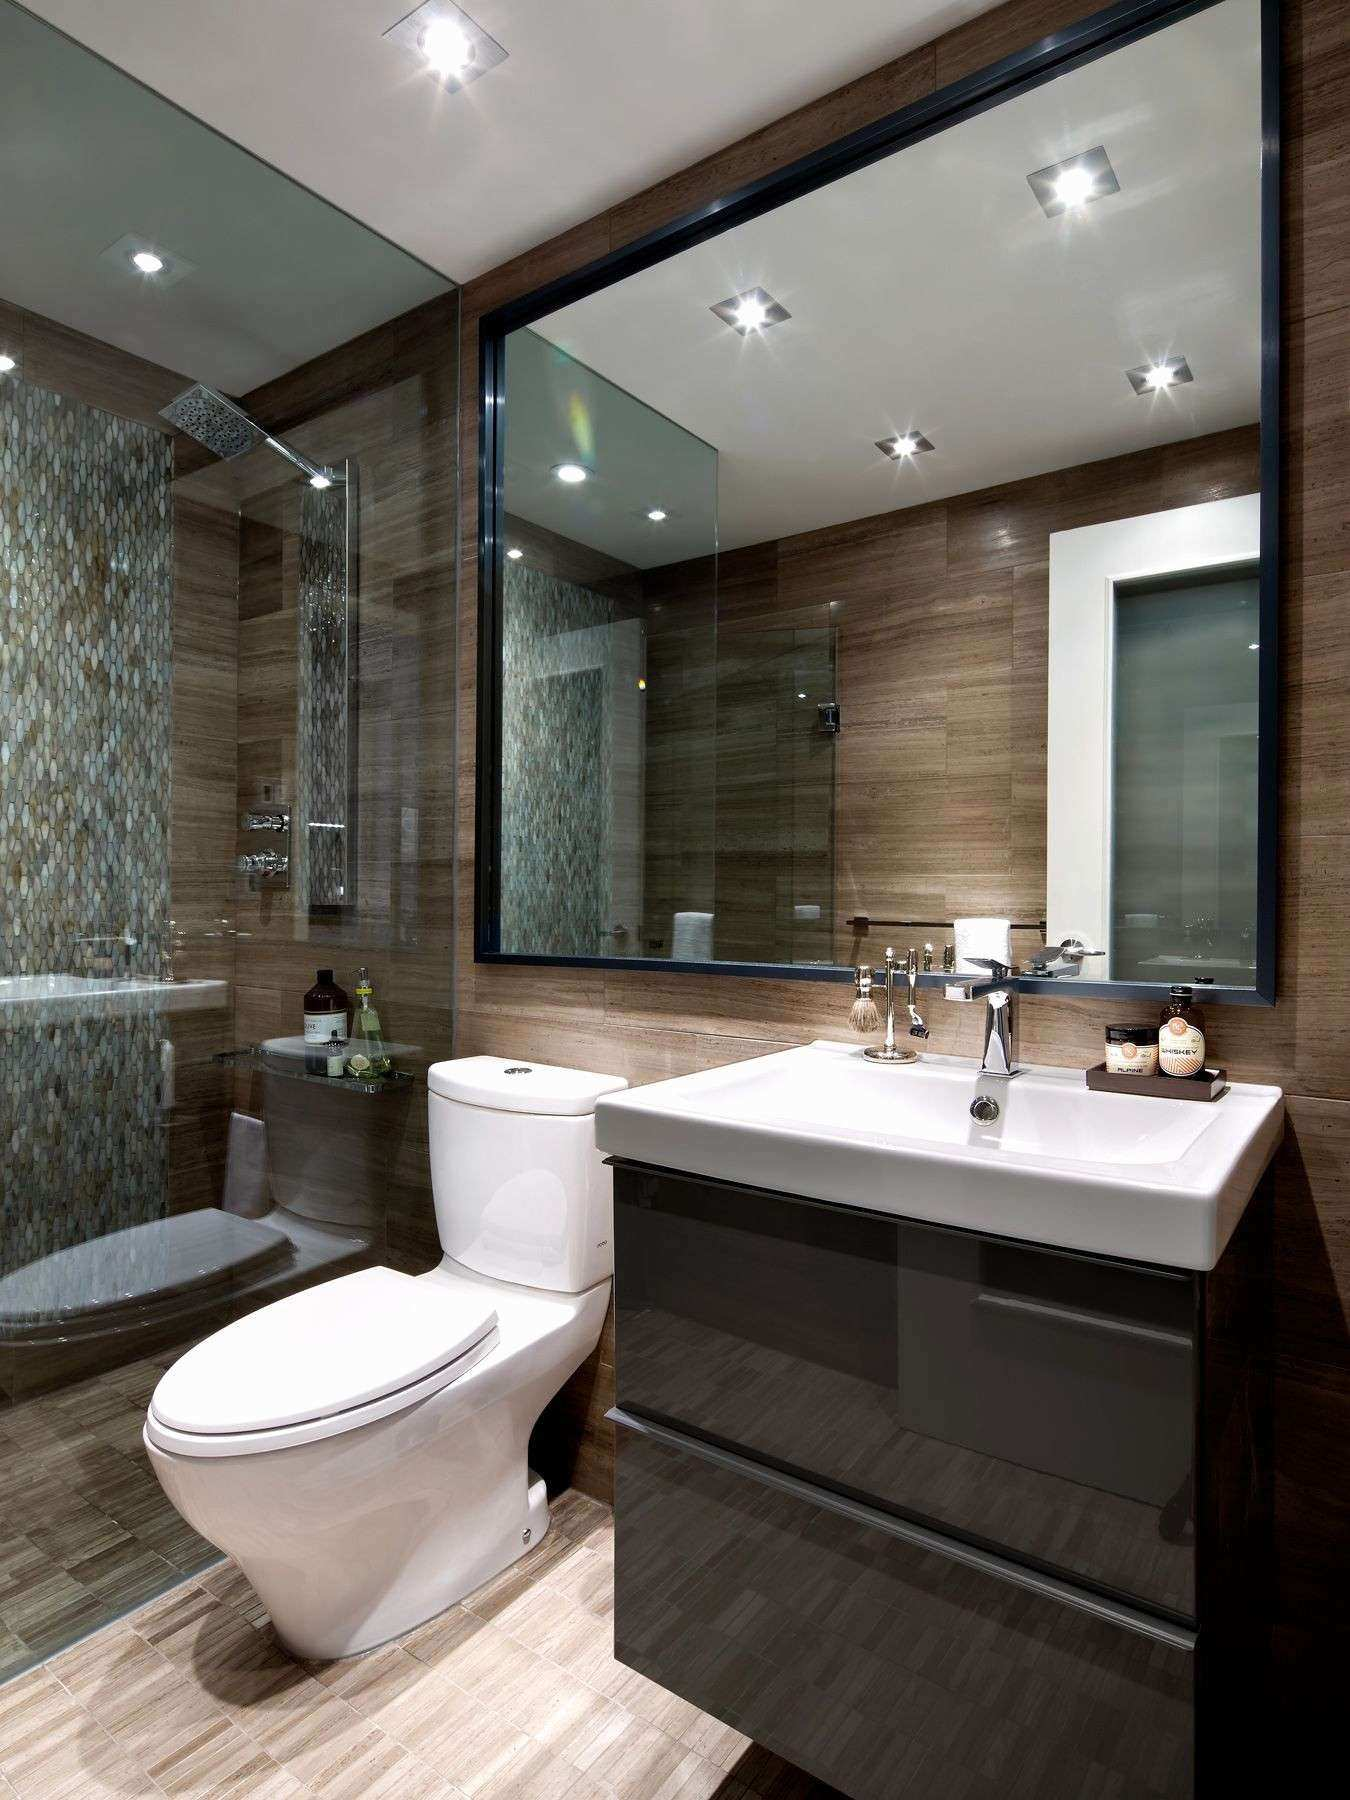 37 Awesome Bathroom Accessories Ideas Gallery